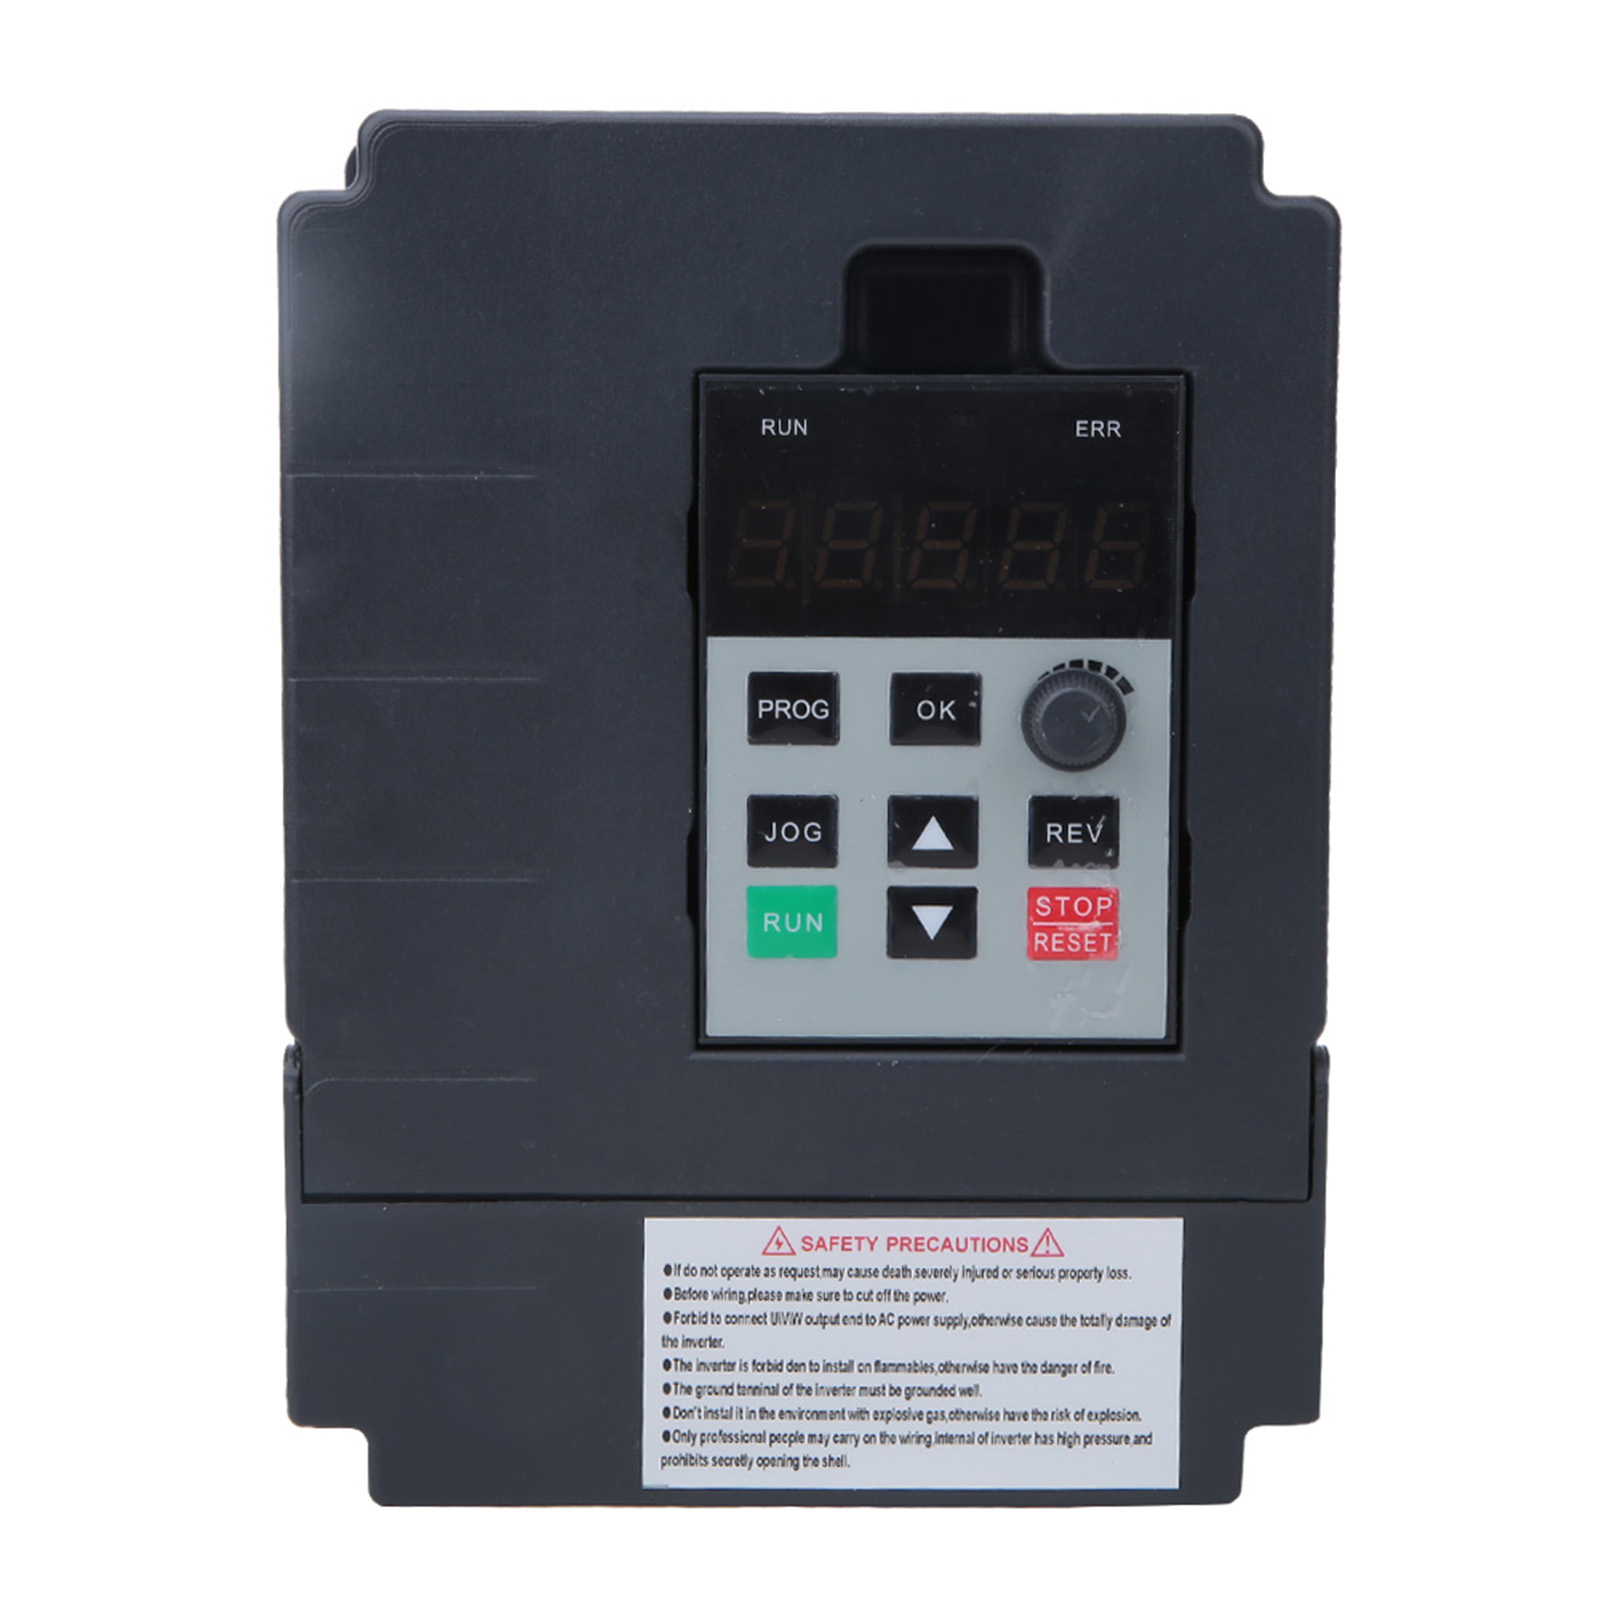 2-2KW-220V-Single-phase-inverter-input-VFD-3-Phase-Output-Frequency-Converter thumbnail 13